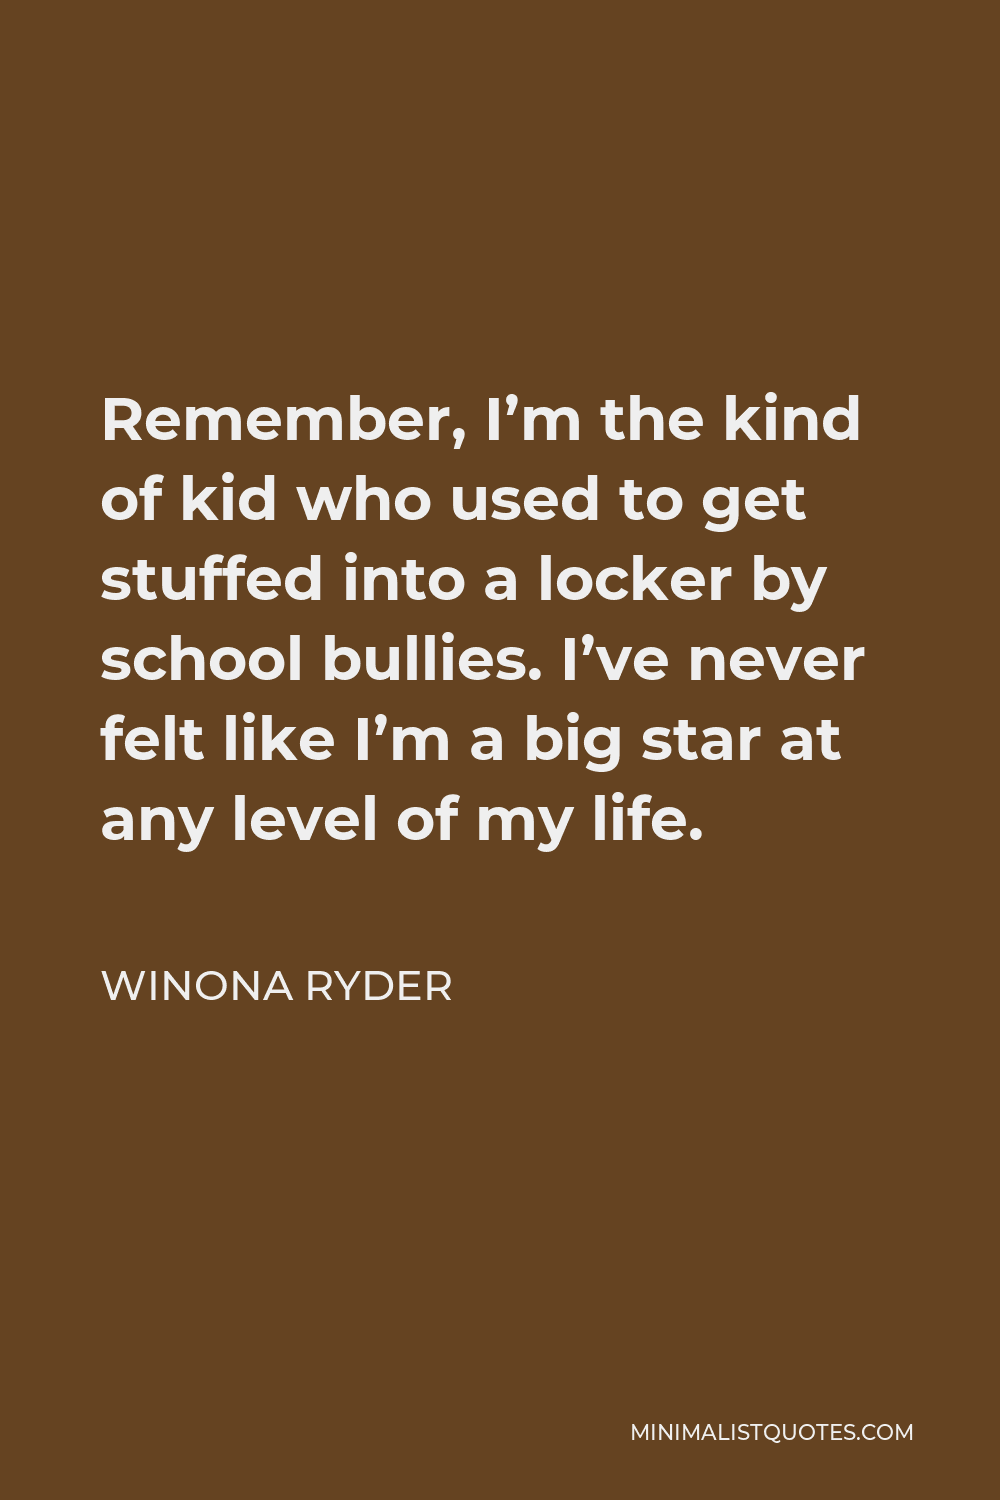 Winona Ryder Quote - Remember, I'm the kind of kid who used to get stuffed into a locker by school bullies. I've never felt like I'm a big star at any level of my life.